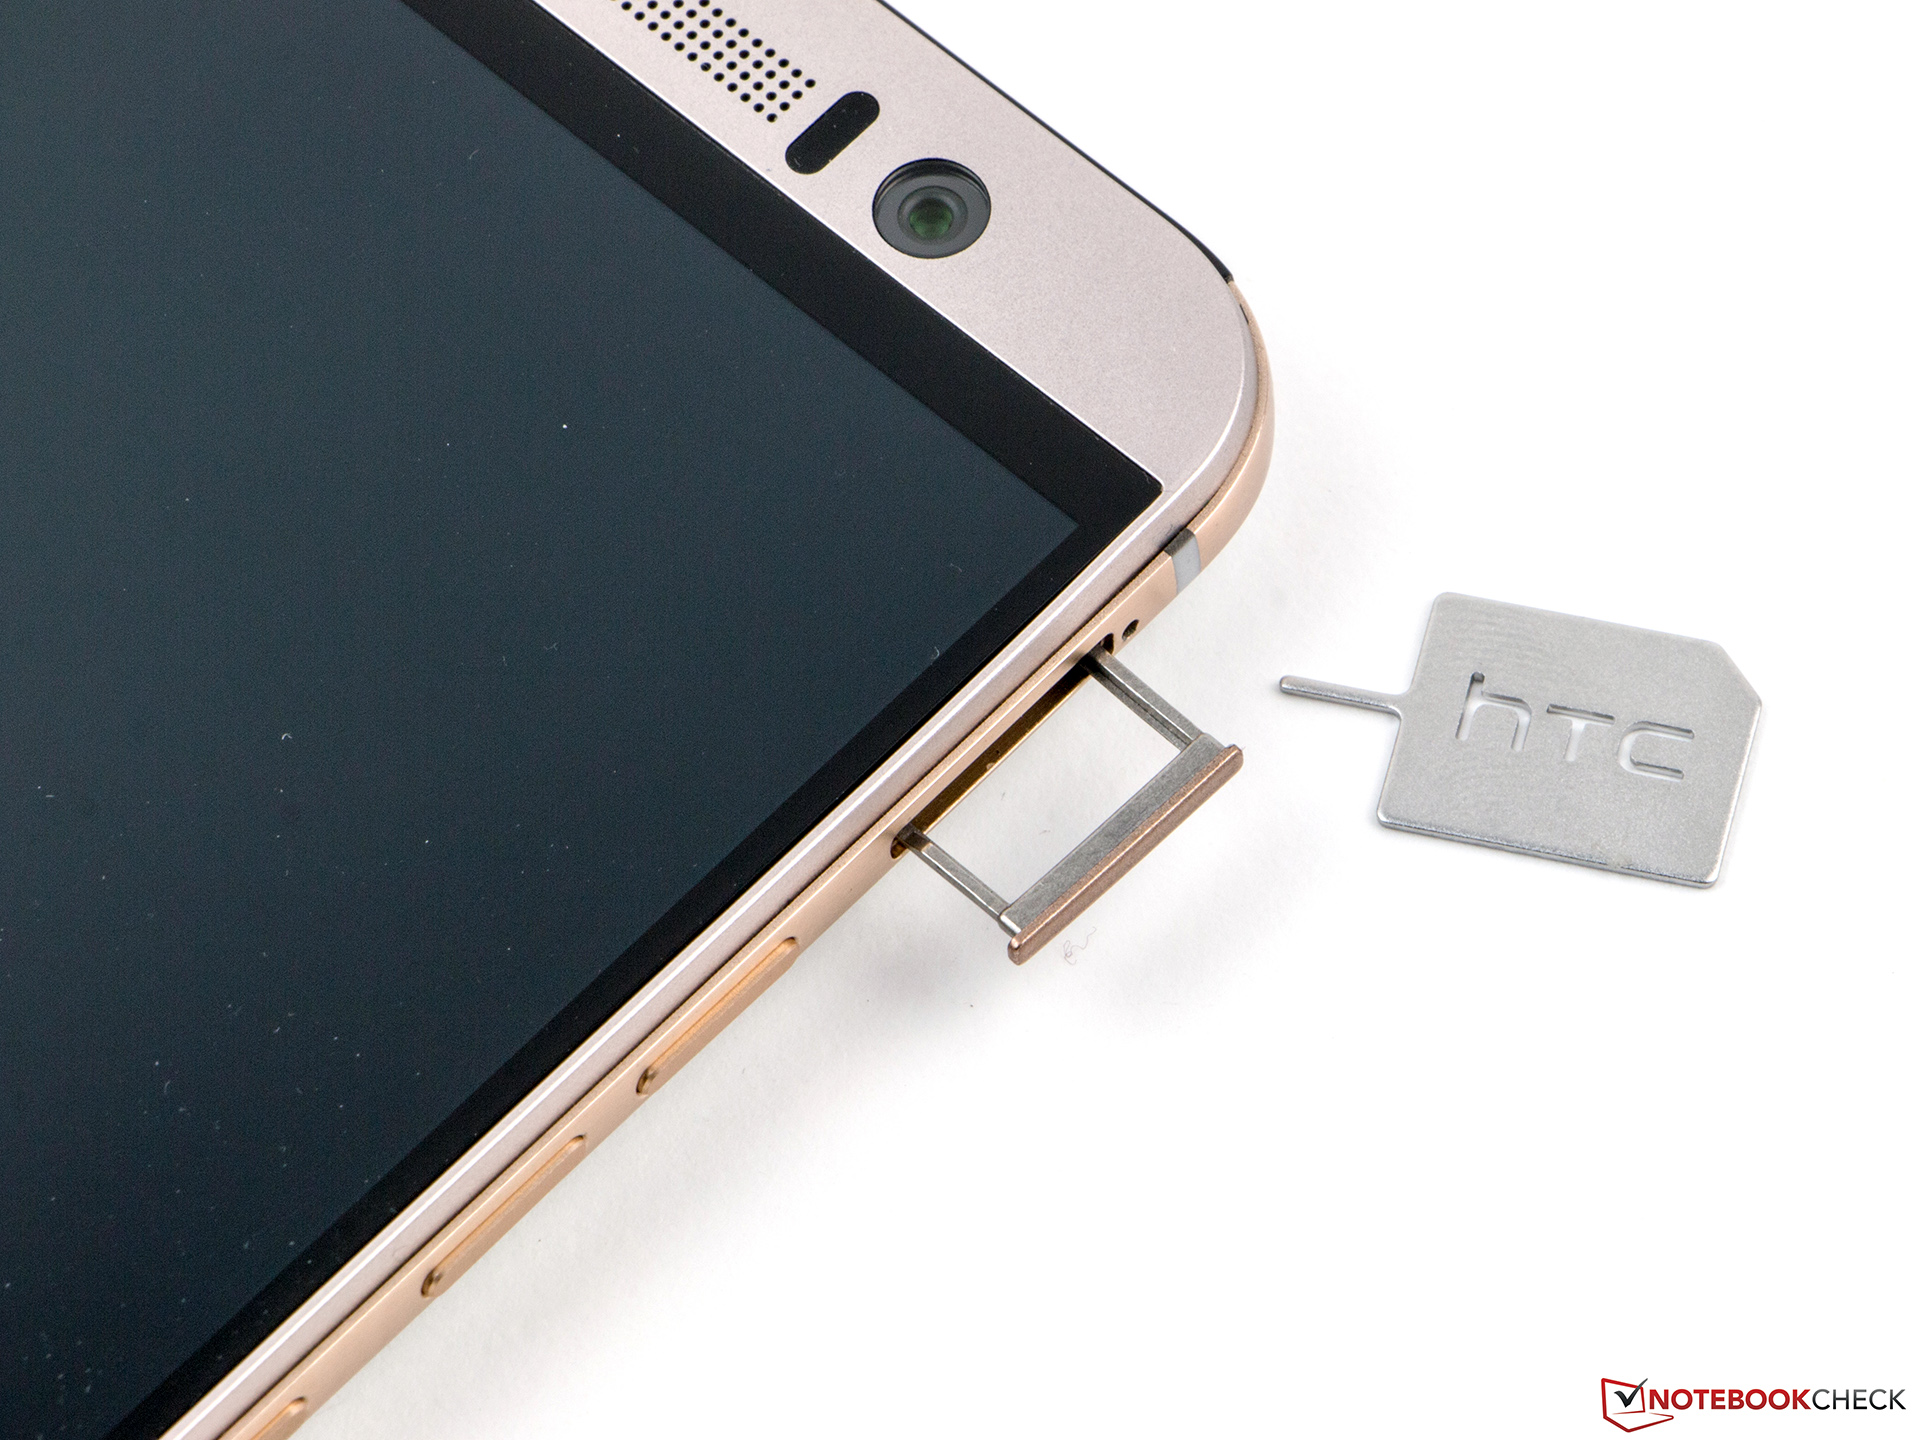 Htc one m9 sd card slot which slots to play and how to win